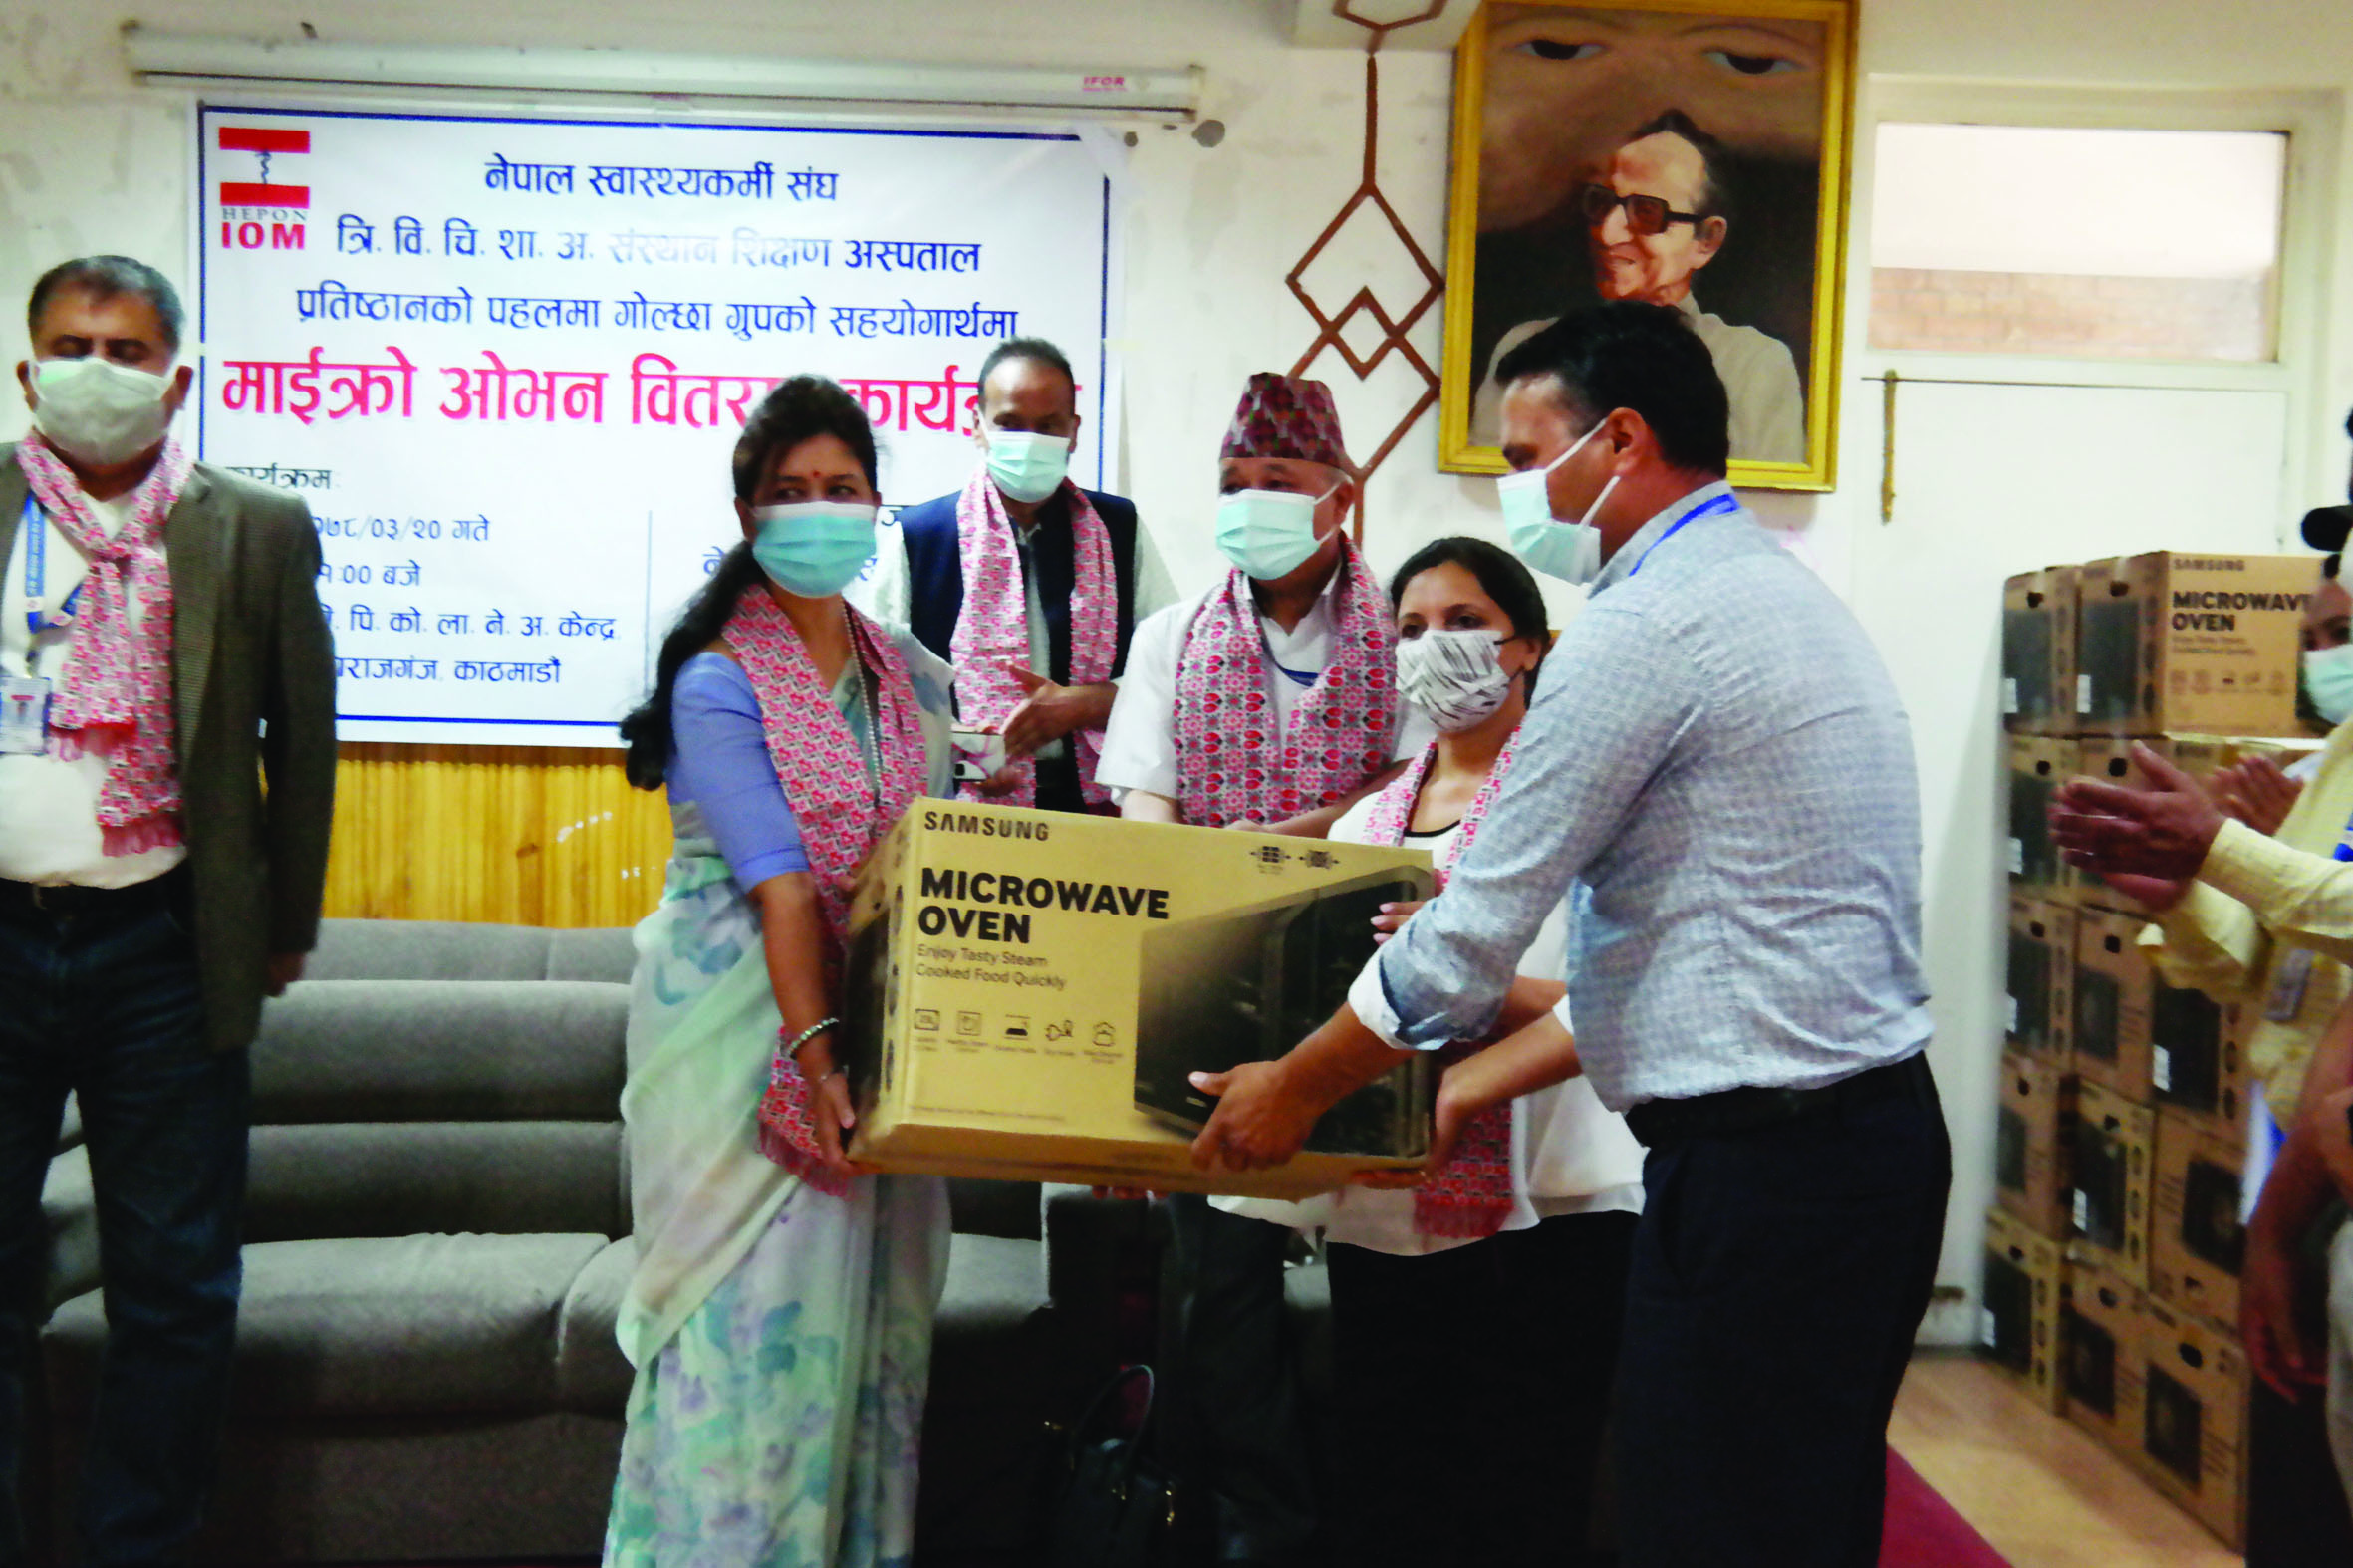 Golchha Group donates 30 Samsung microwave ovens to the teaching hospital